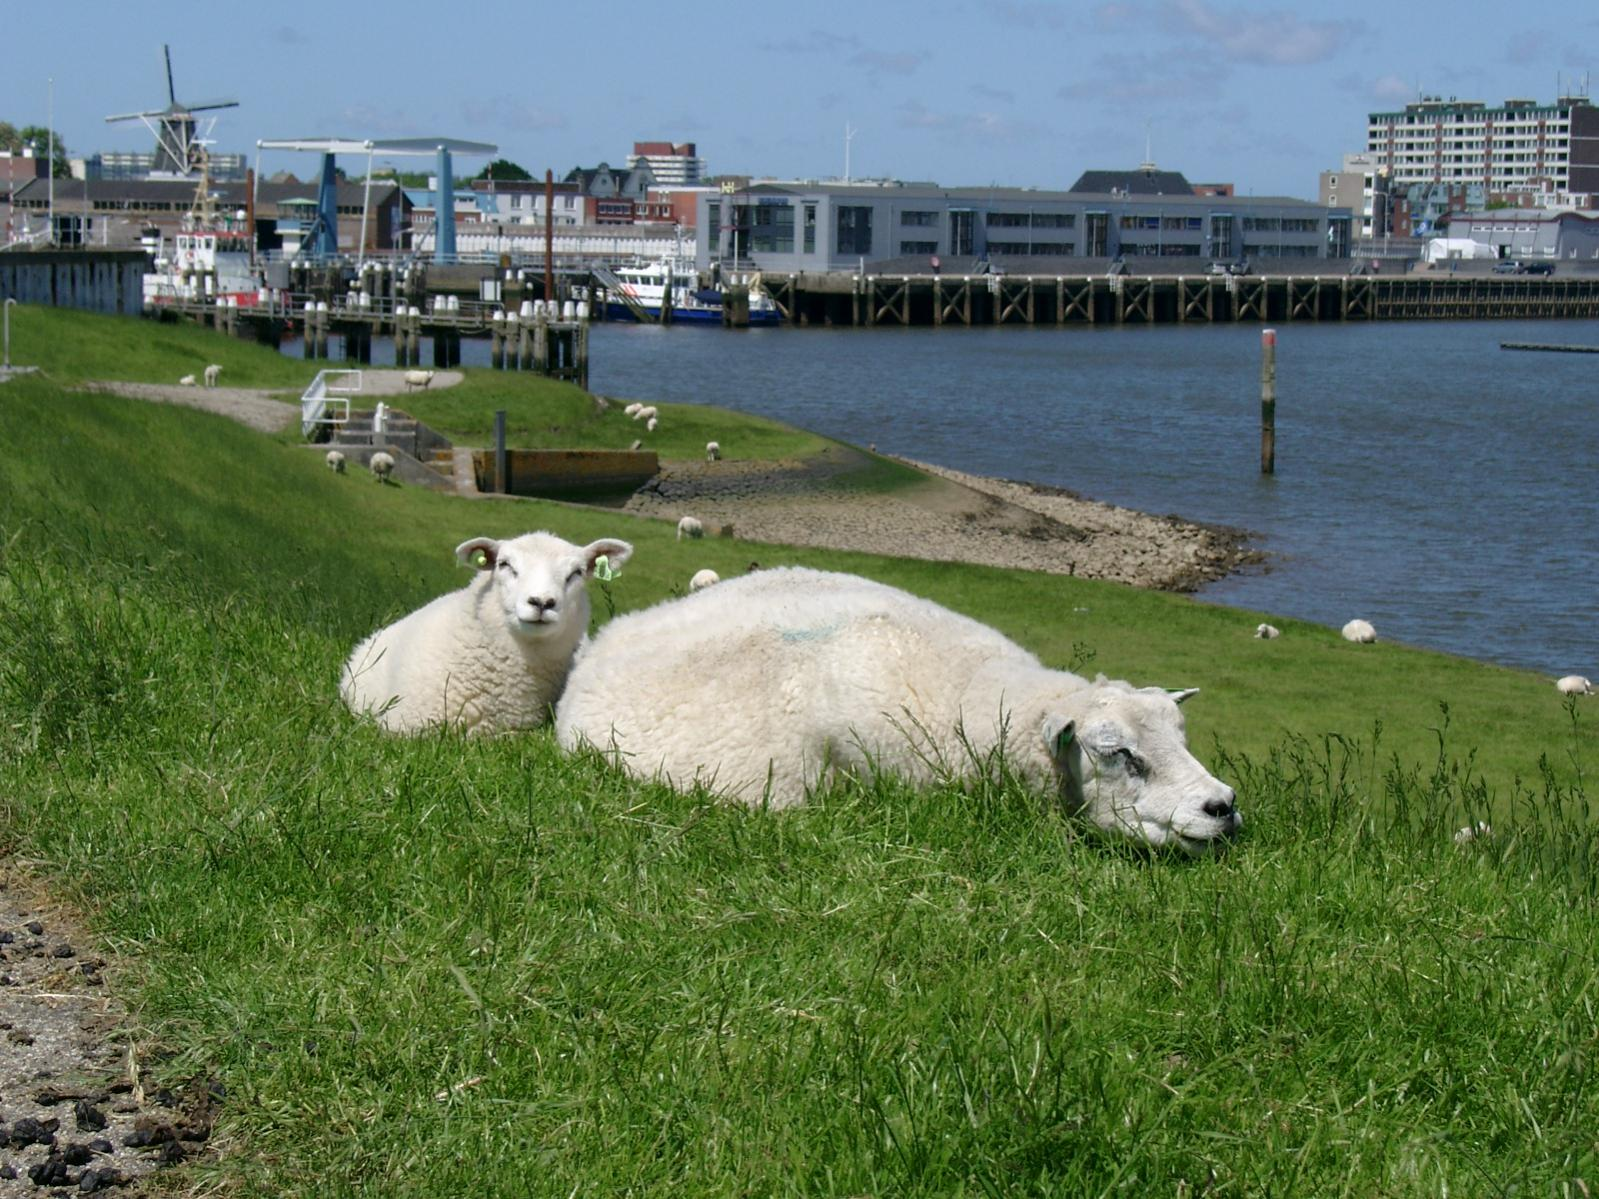 Click image for larger version  Name:NL 020613 Delfzijl sheep spotting 2.jpg Views:304 Size:320.0 KB ID:1323